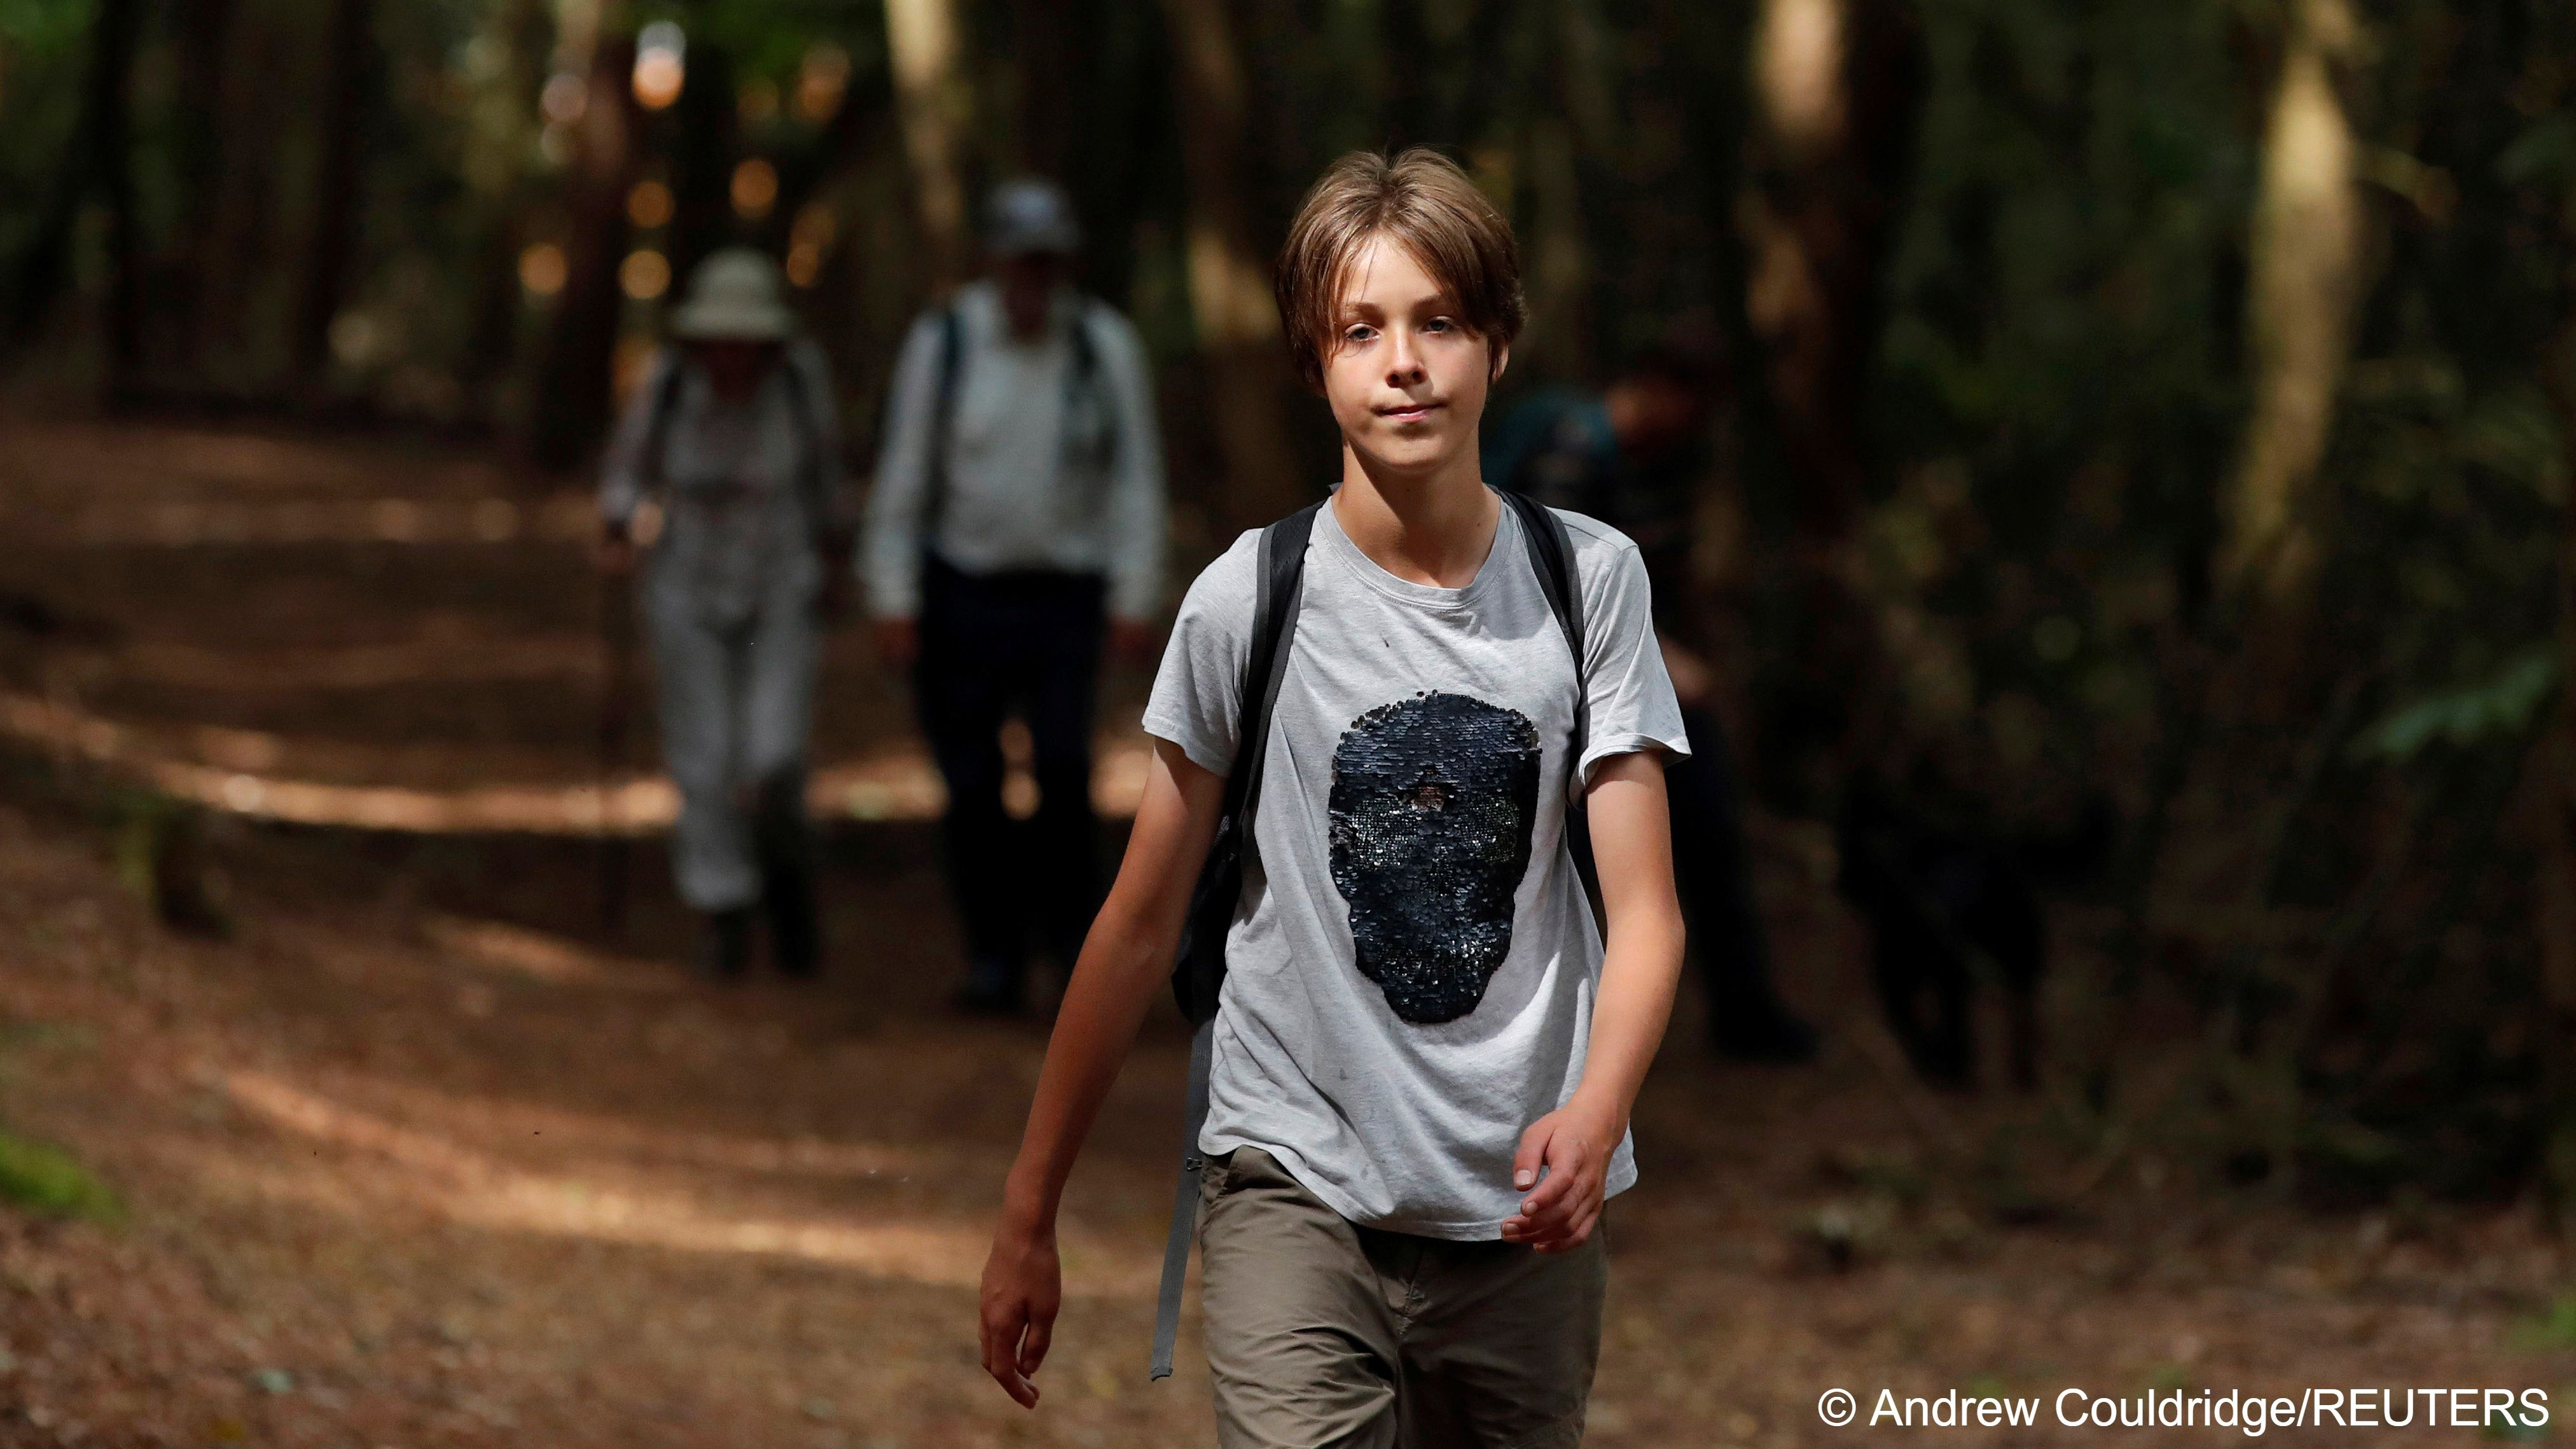 British boy, 11, walks to save the earth photo Andre Couldridge, REUTERS